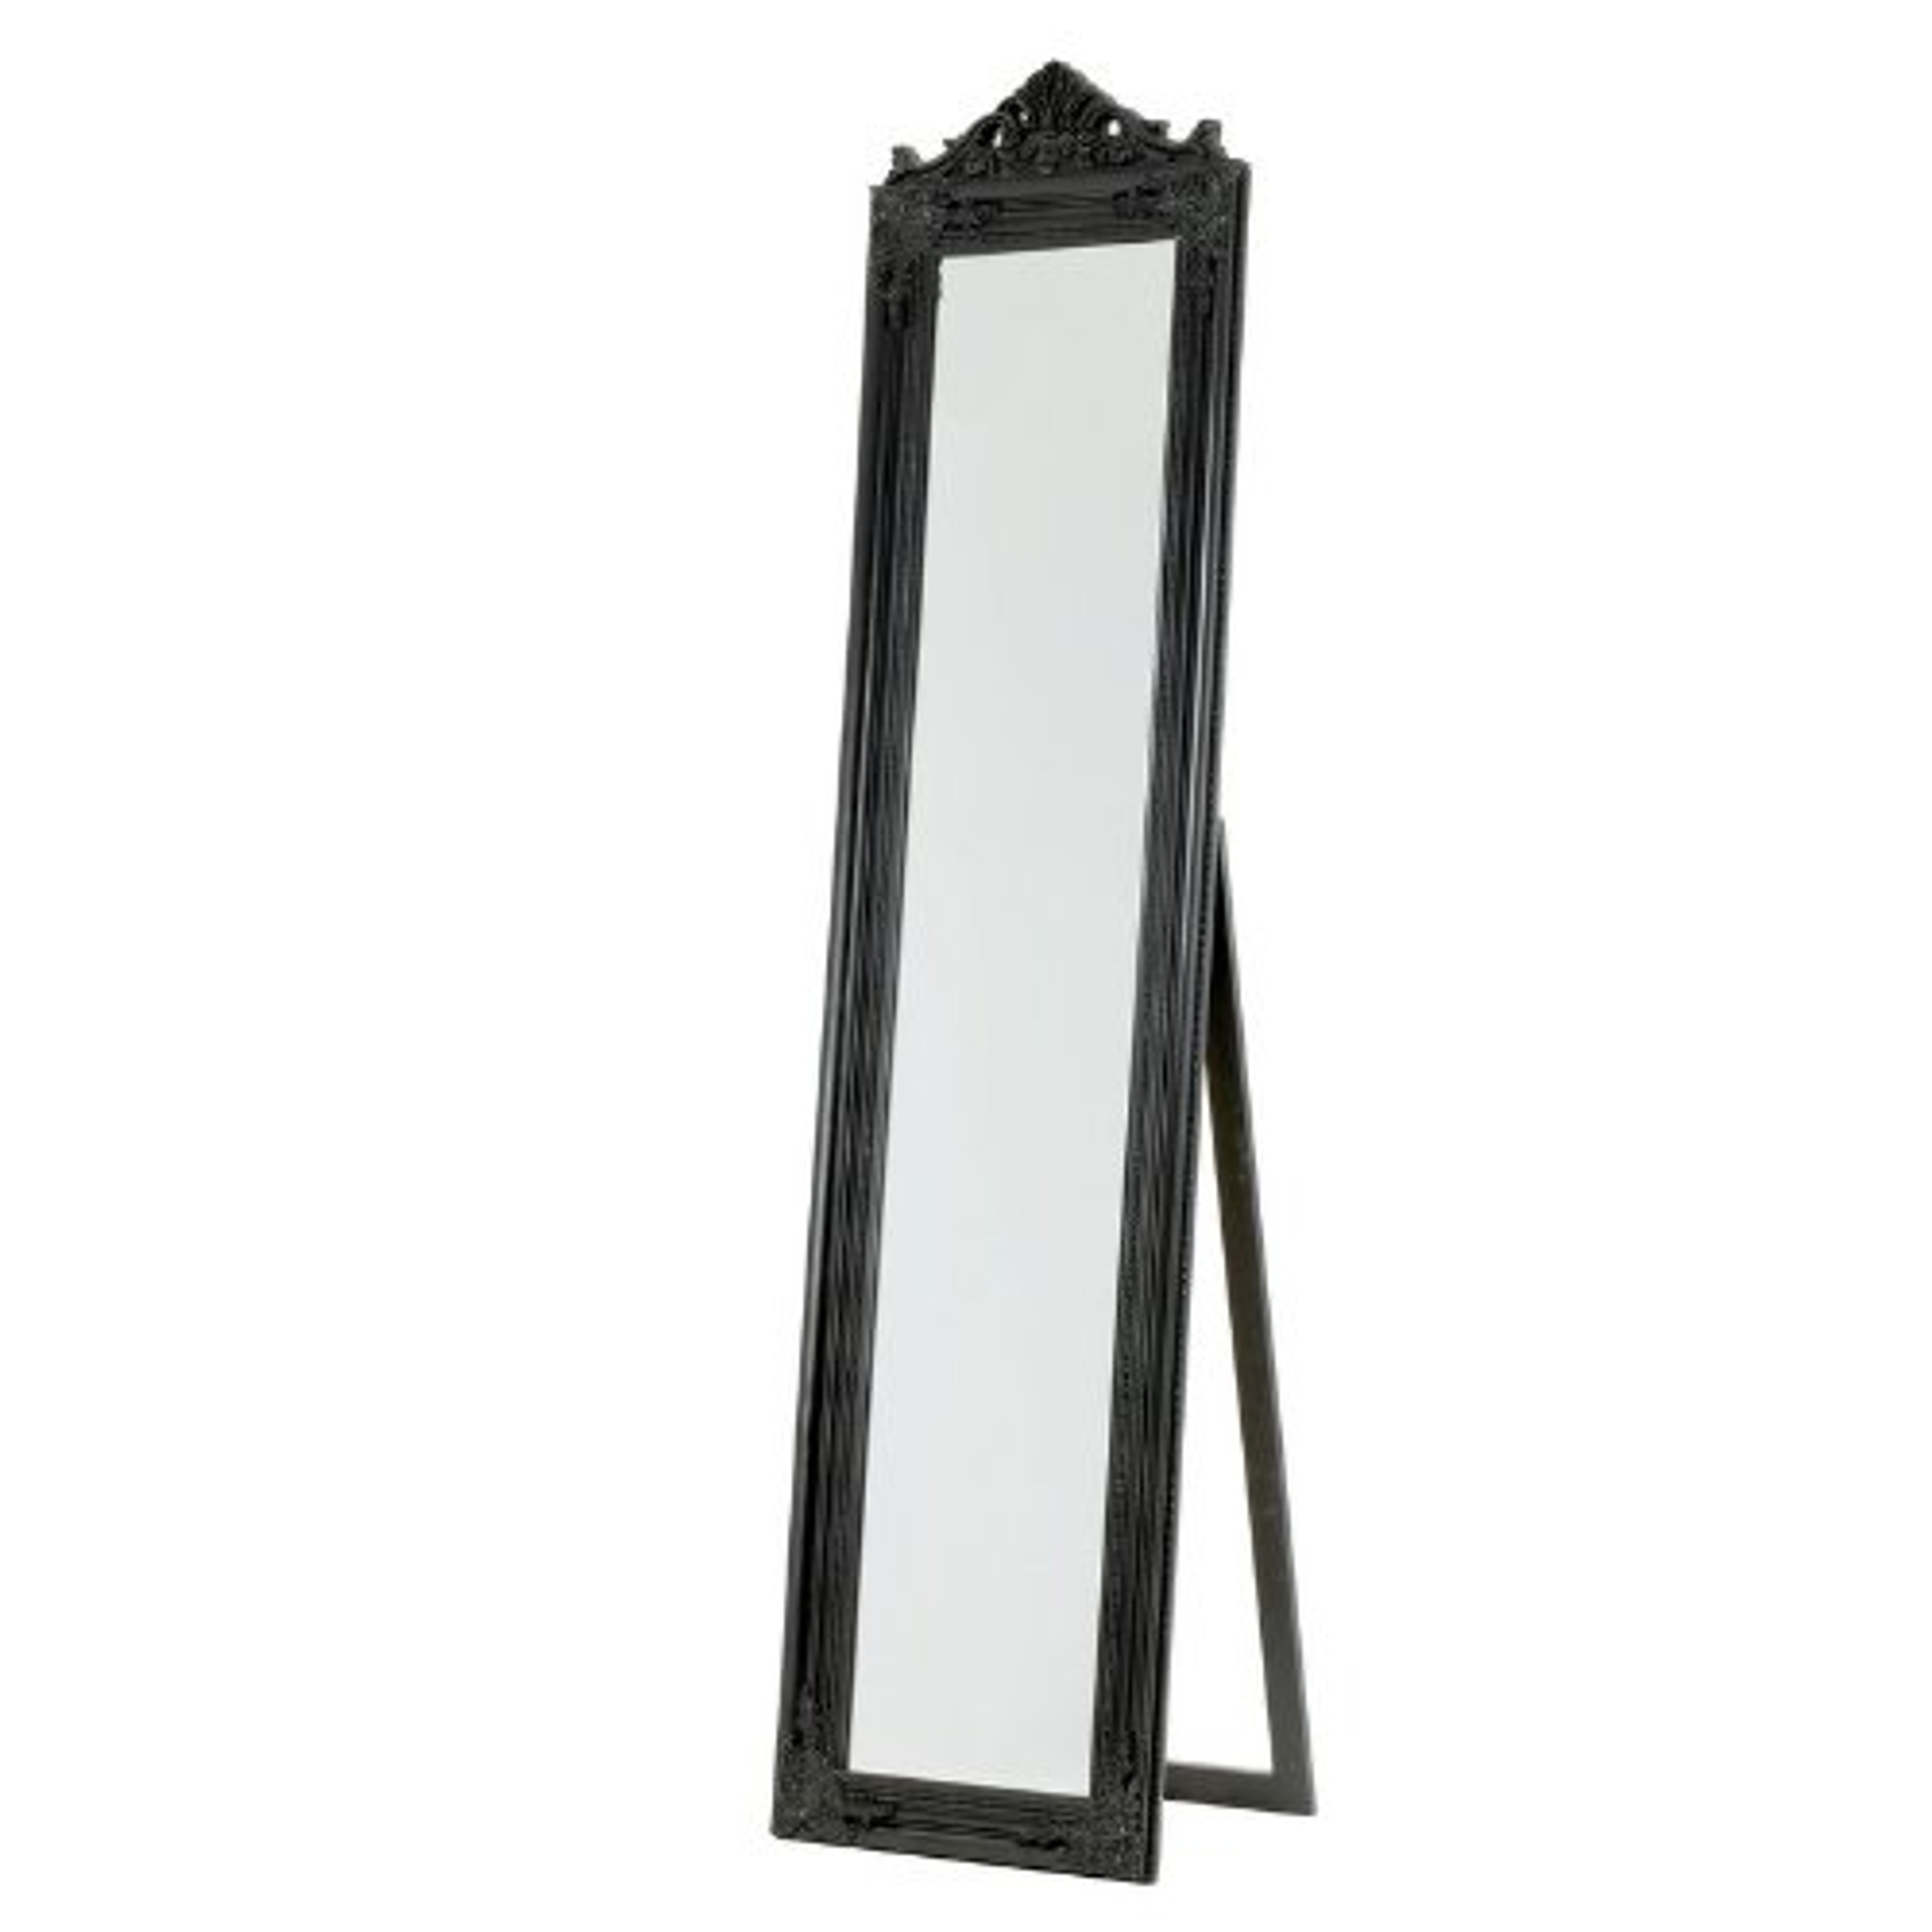 Free Standing French Style Dressing Cheval Mirror Black | blendboutique